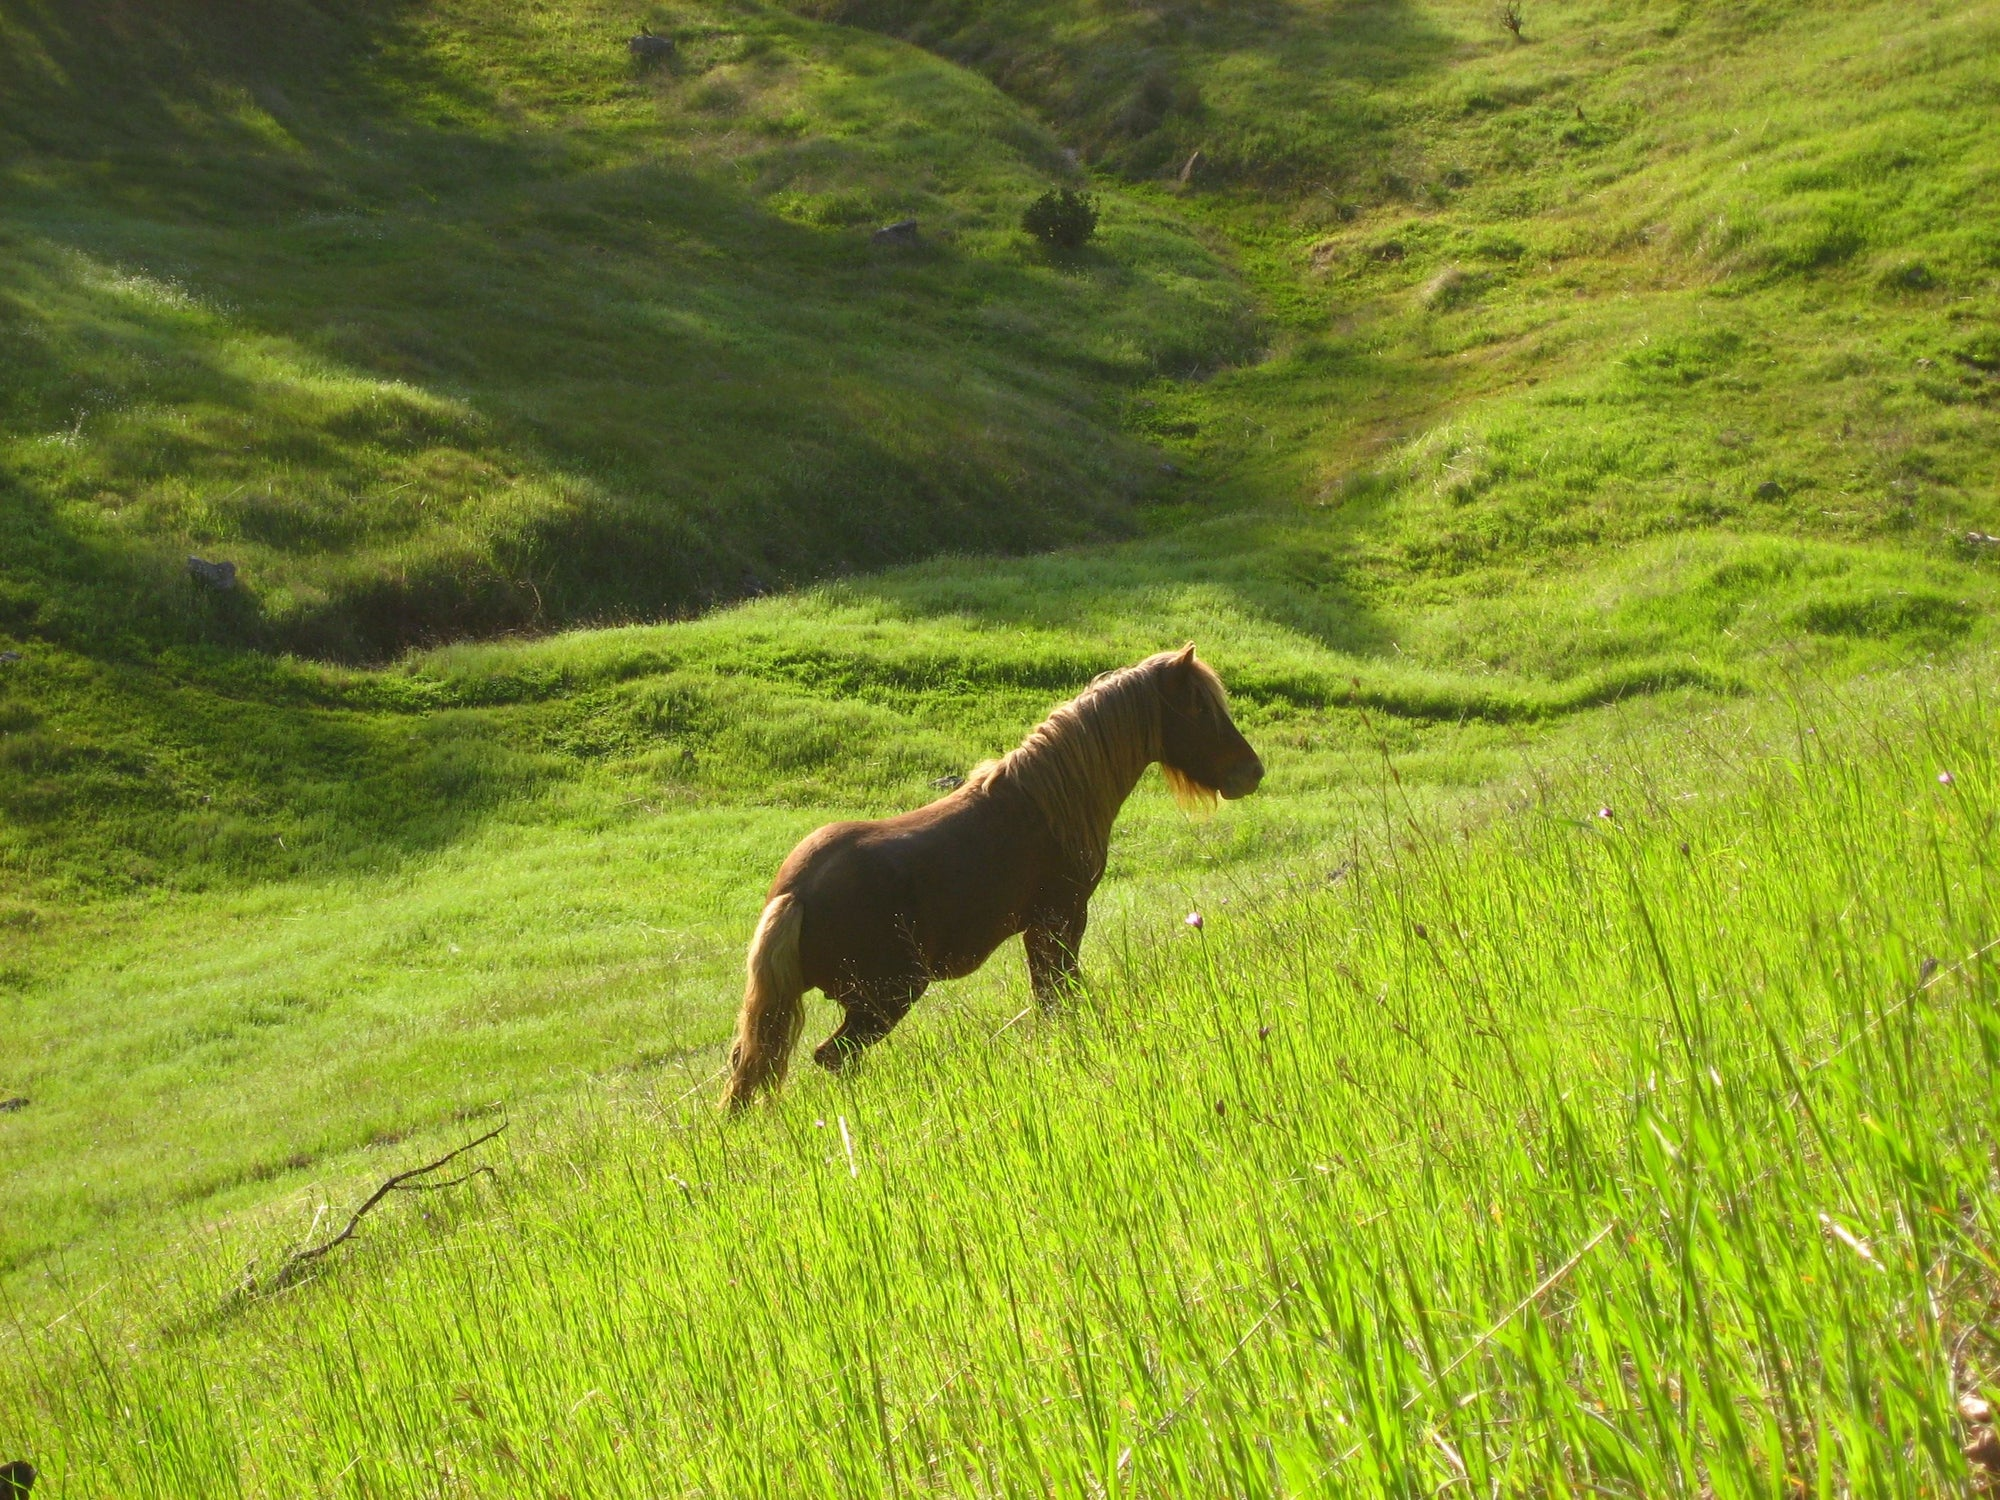 <I>Stallion in Green Meadow</I><br>Mendocino, California, 2010<br><br>GC0215